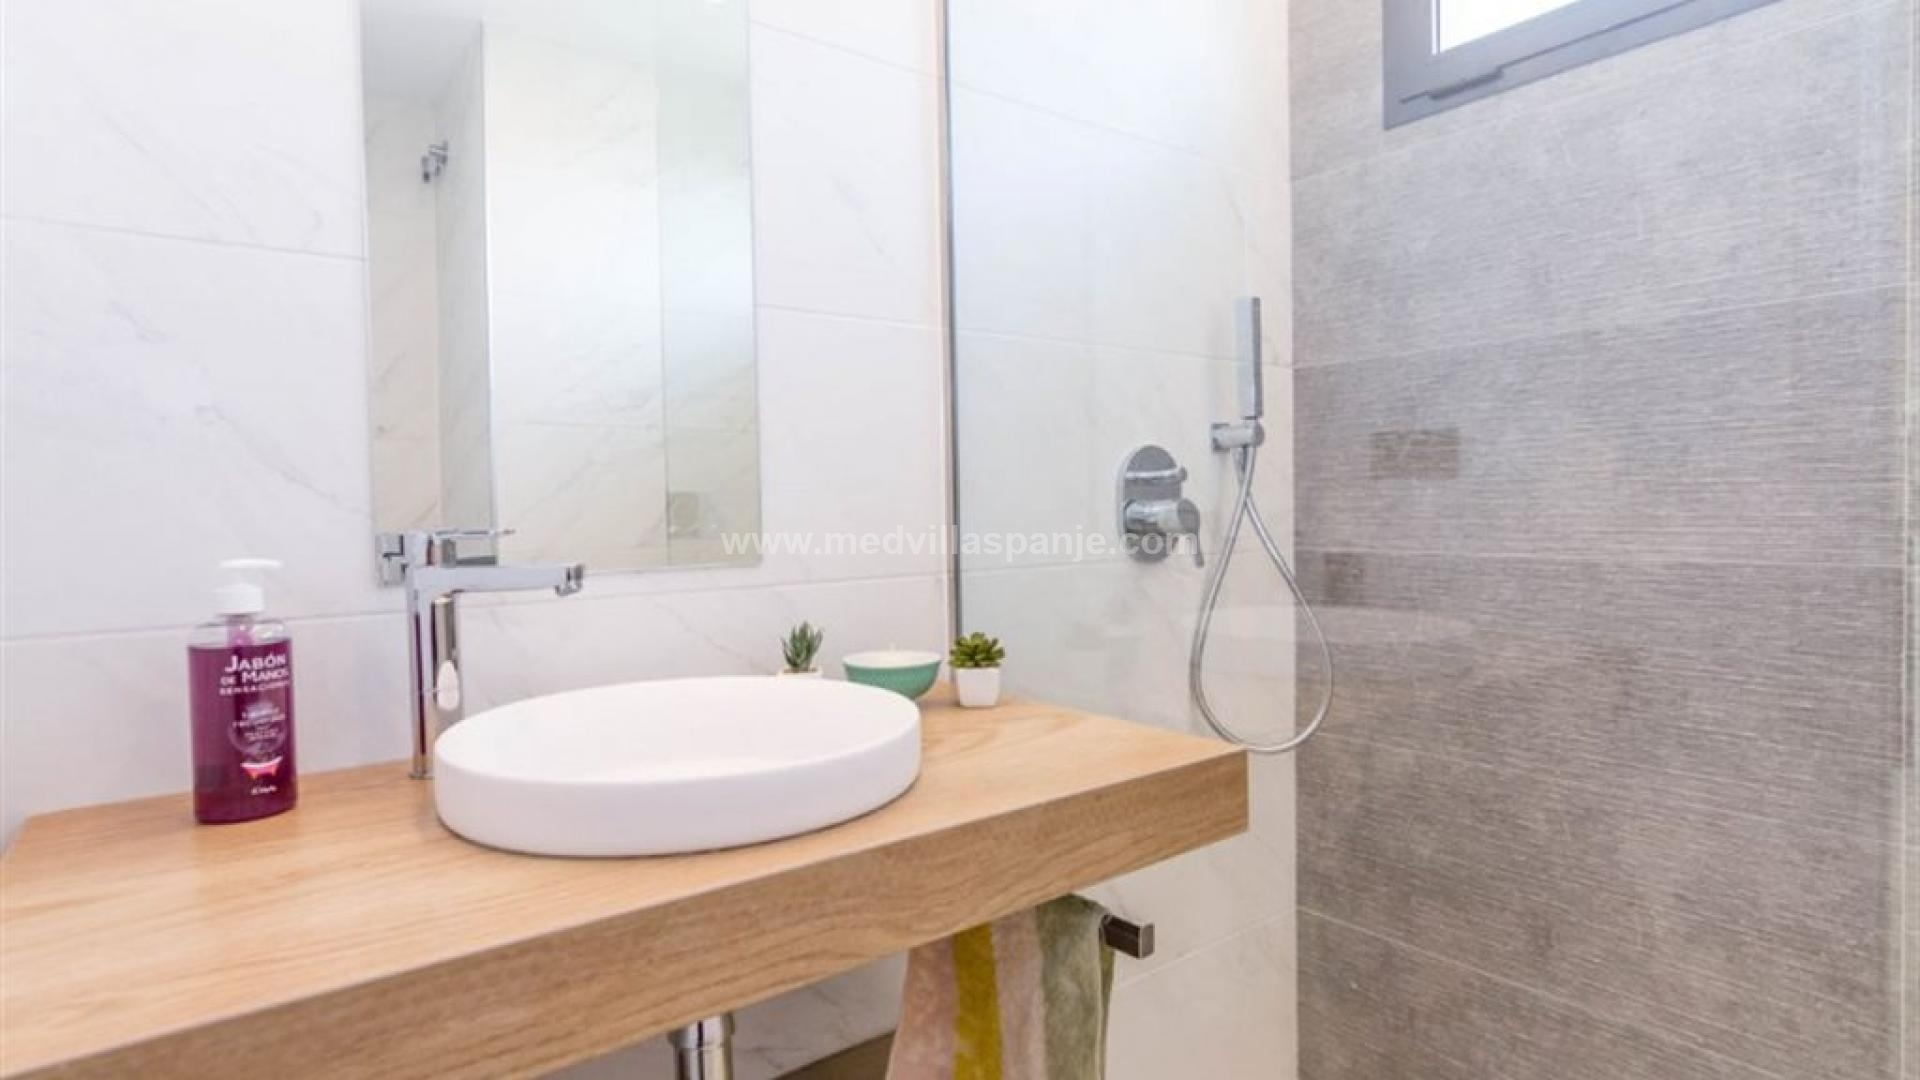 For sale apartments Oasis Beach XIV: new phase in Medvilla Spanje